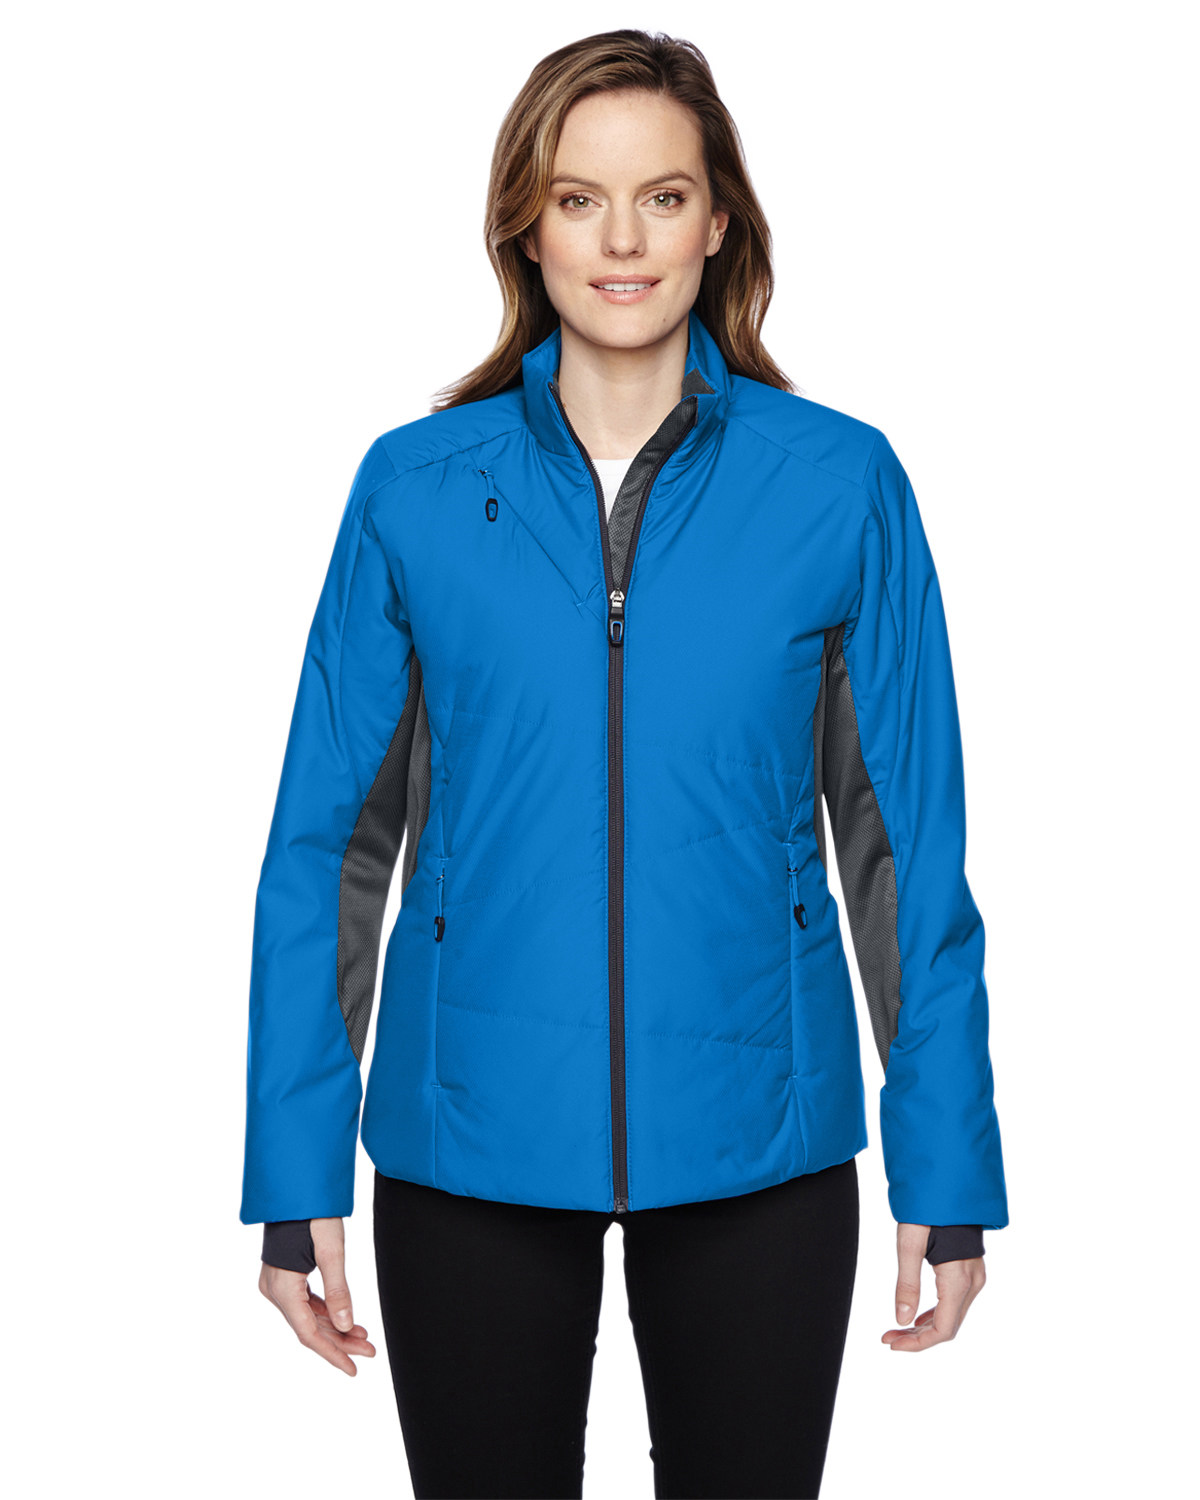 Ladies' Immerge Insulated Hybrid Jacket with Heat Reflect Technology